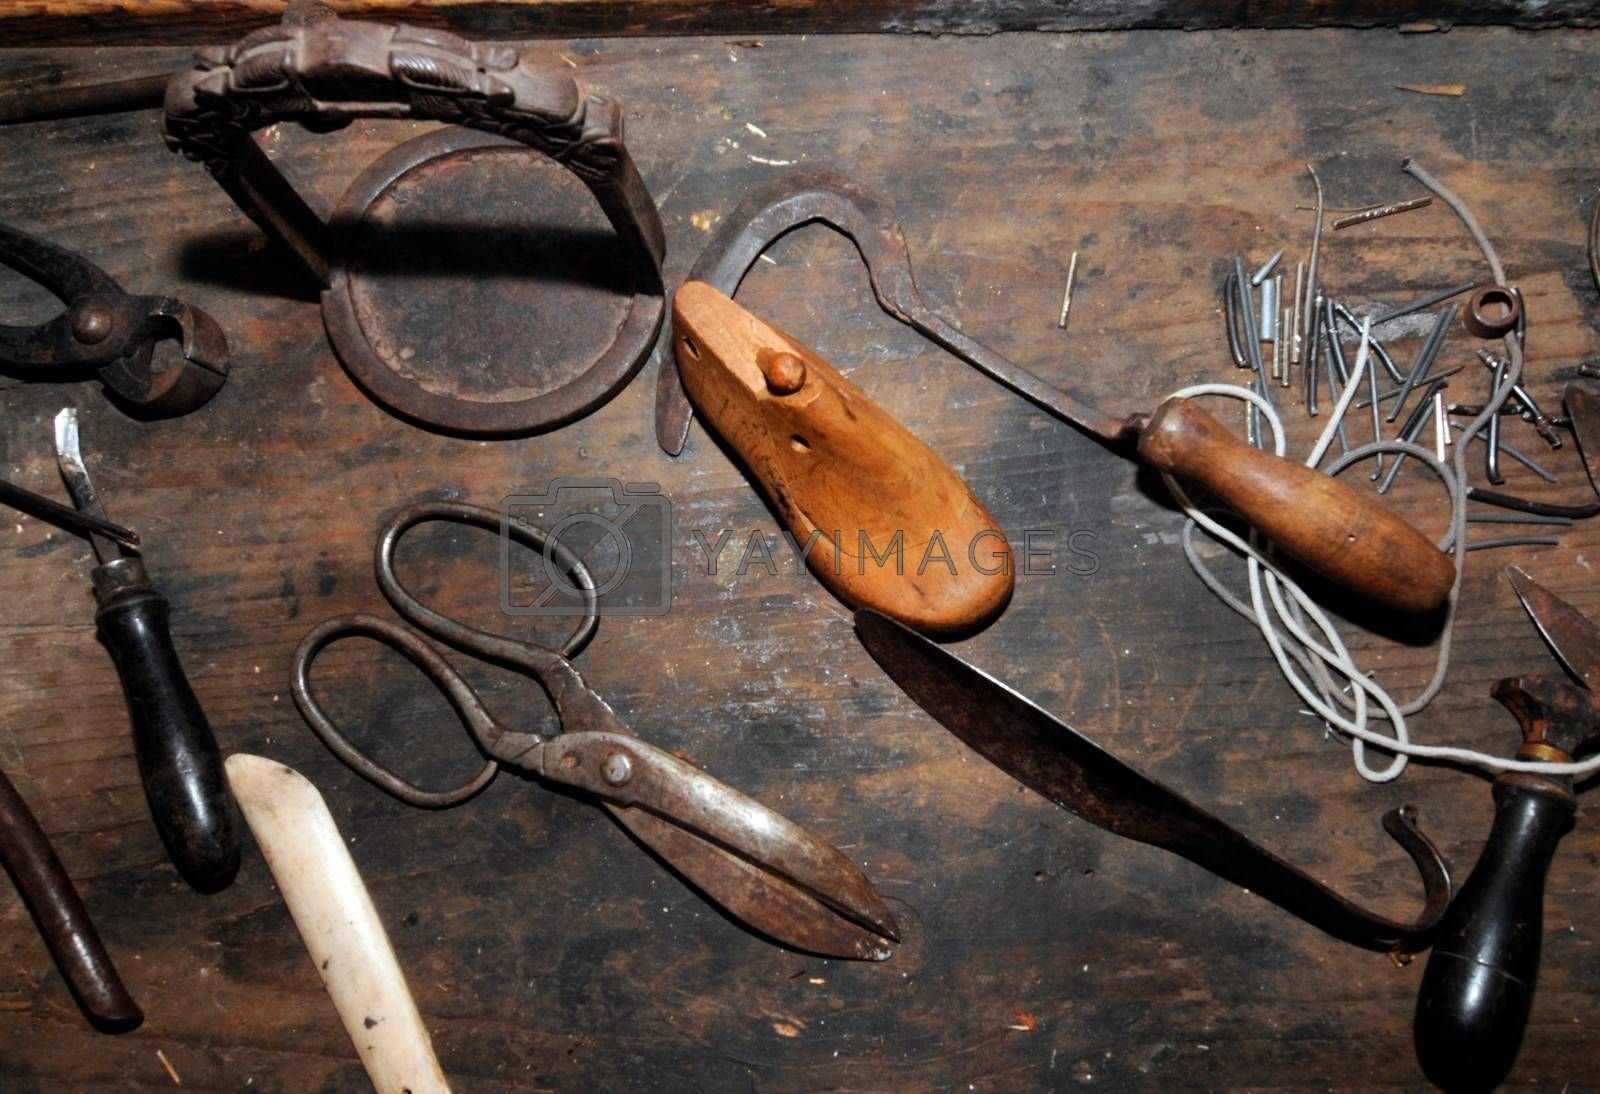 at a shoemakers workshop, table with old and used tools